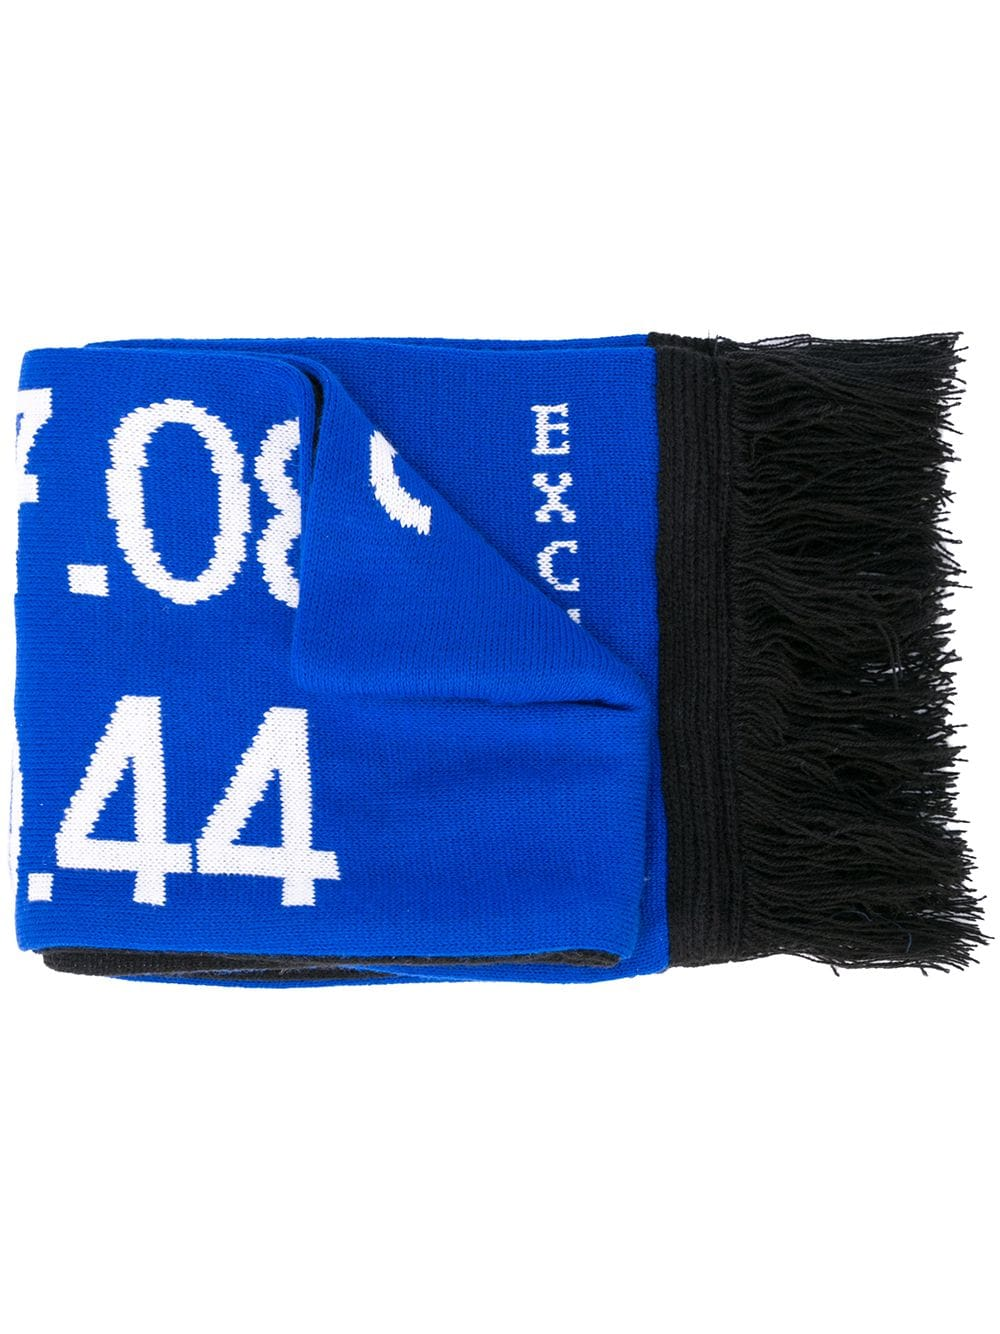 Exchange Rate Scarf